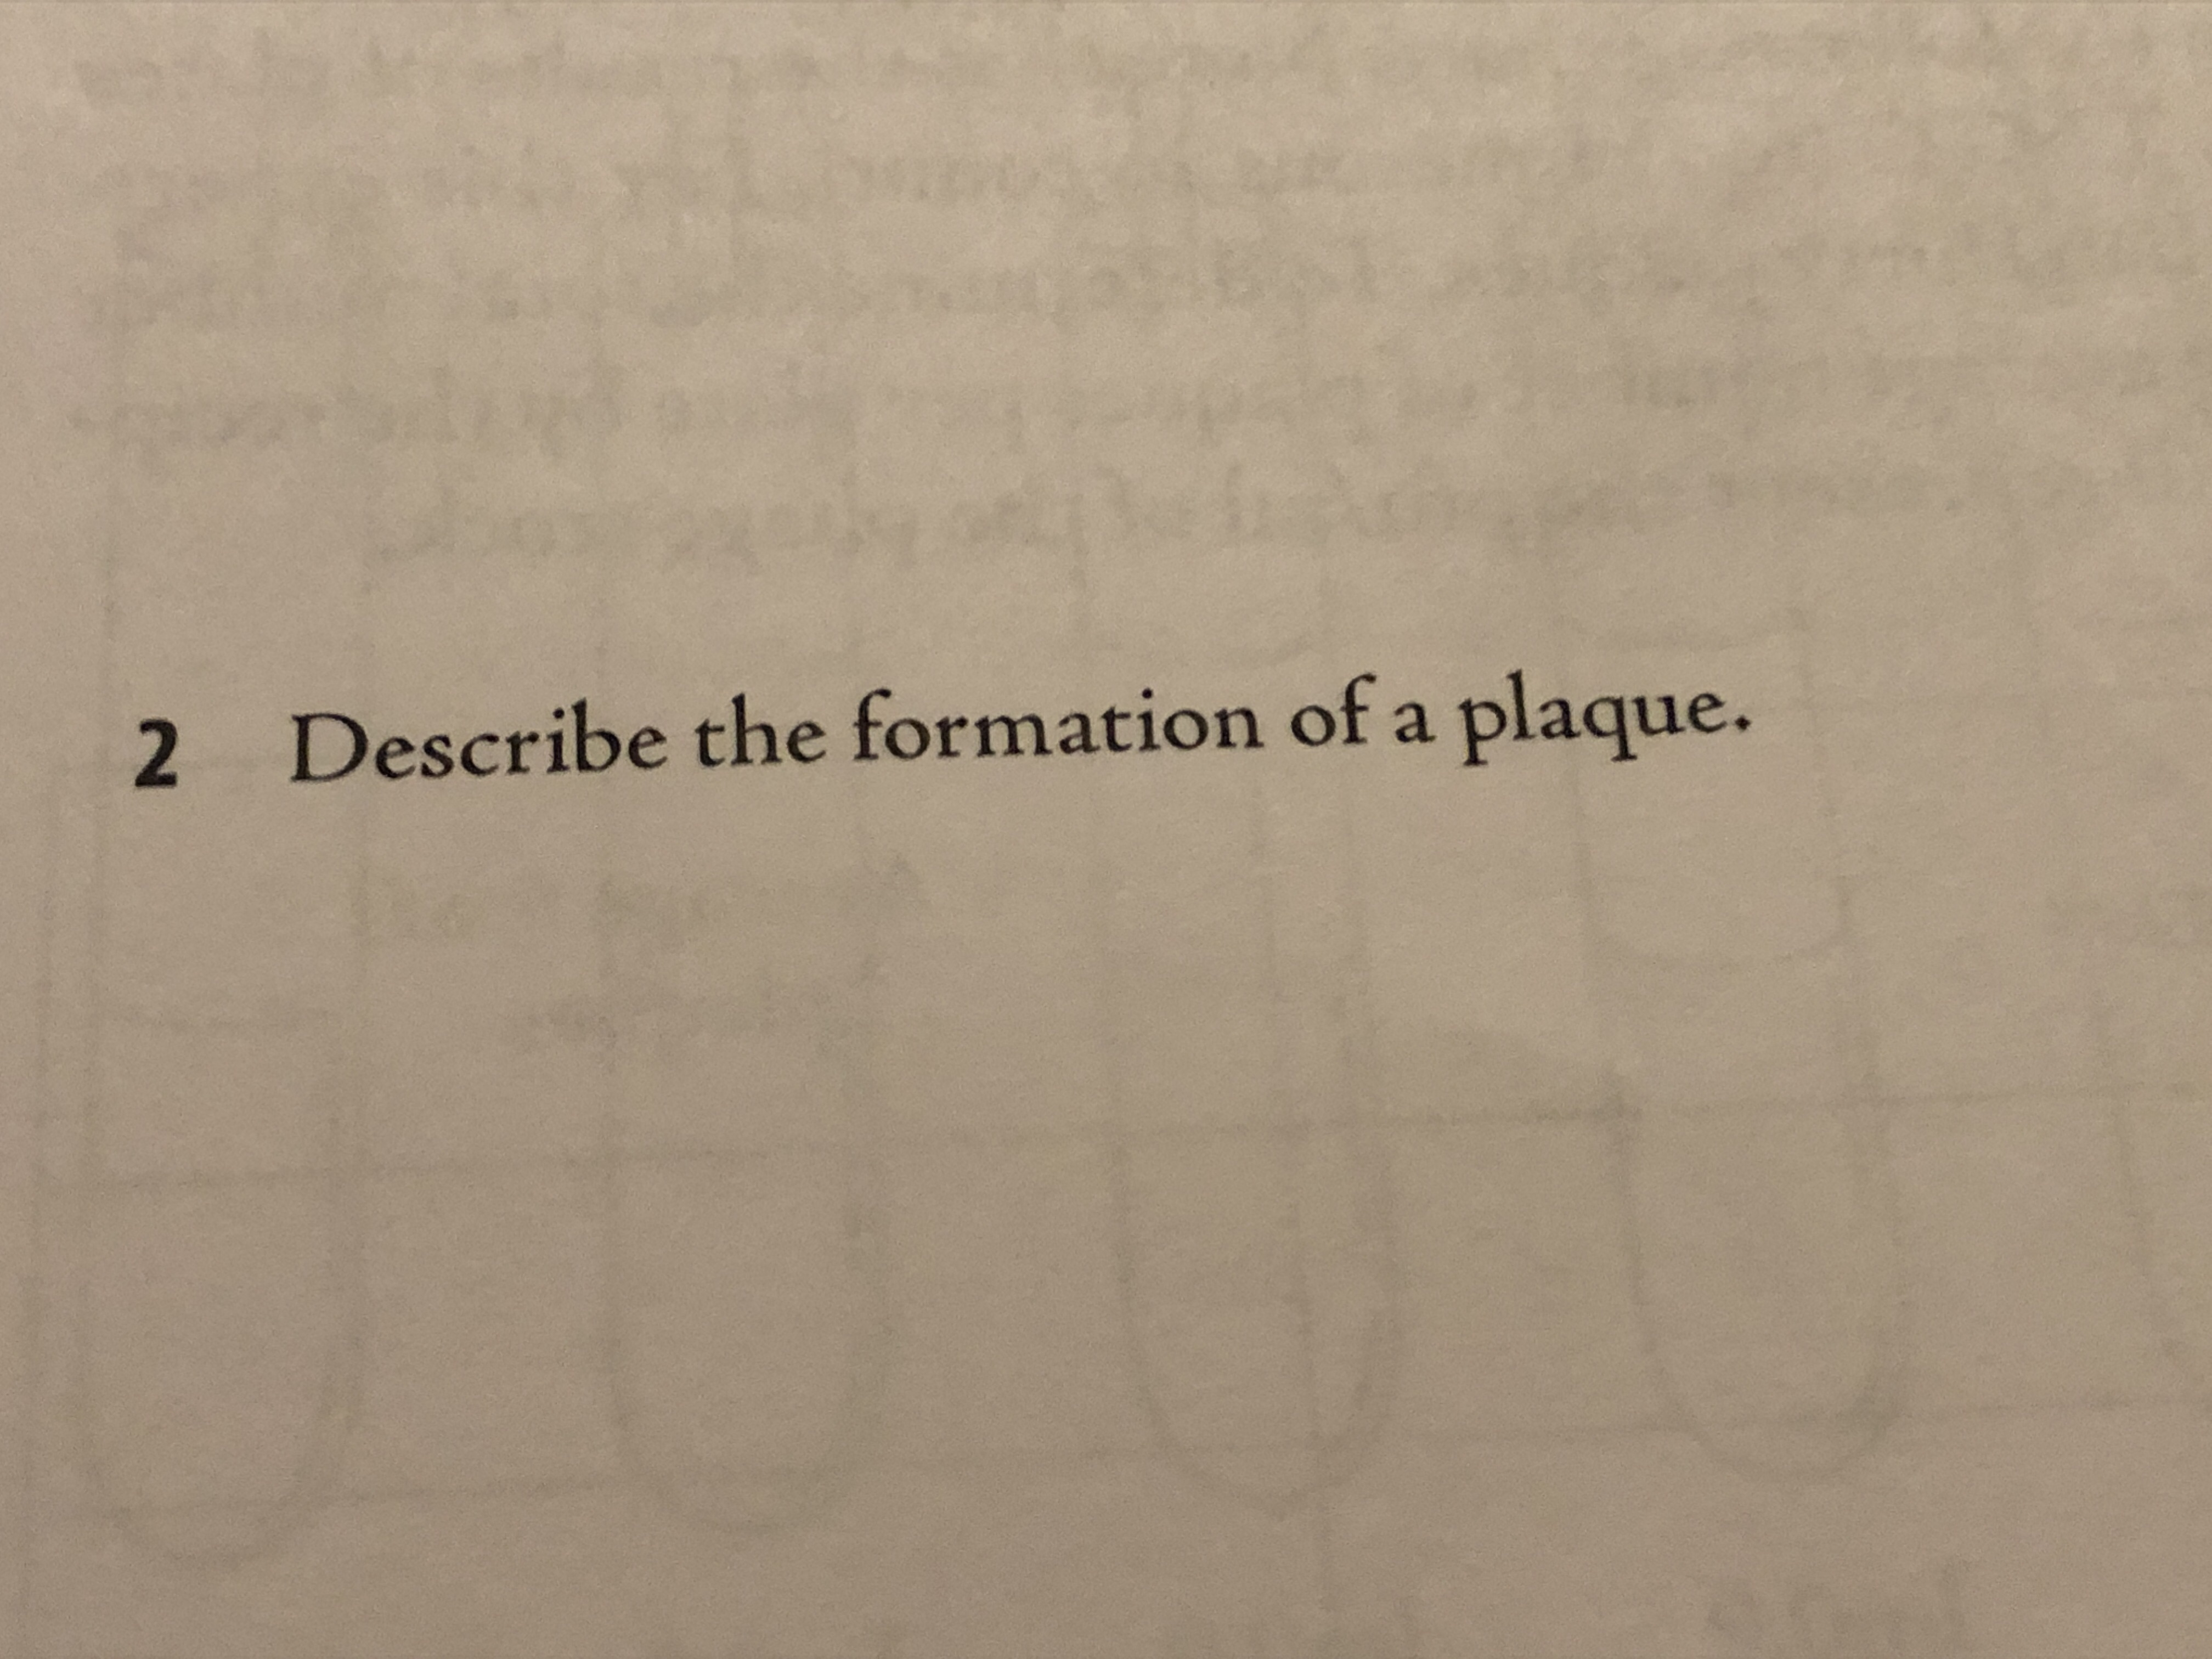 2 Describe the formation of a plaque.